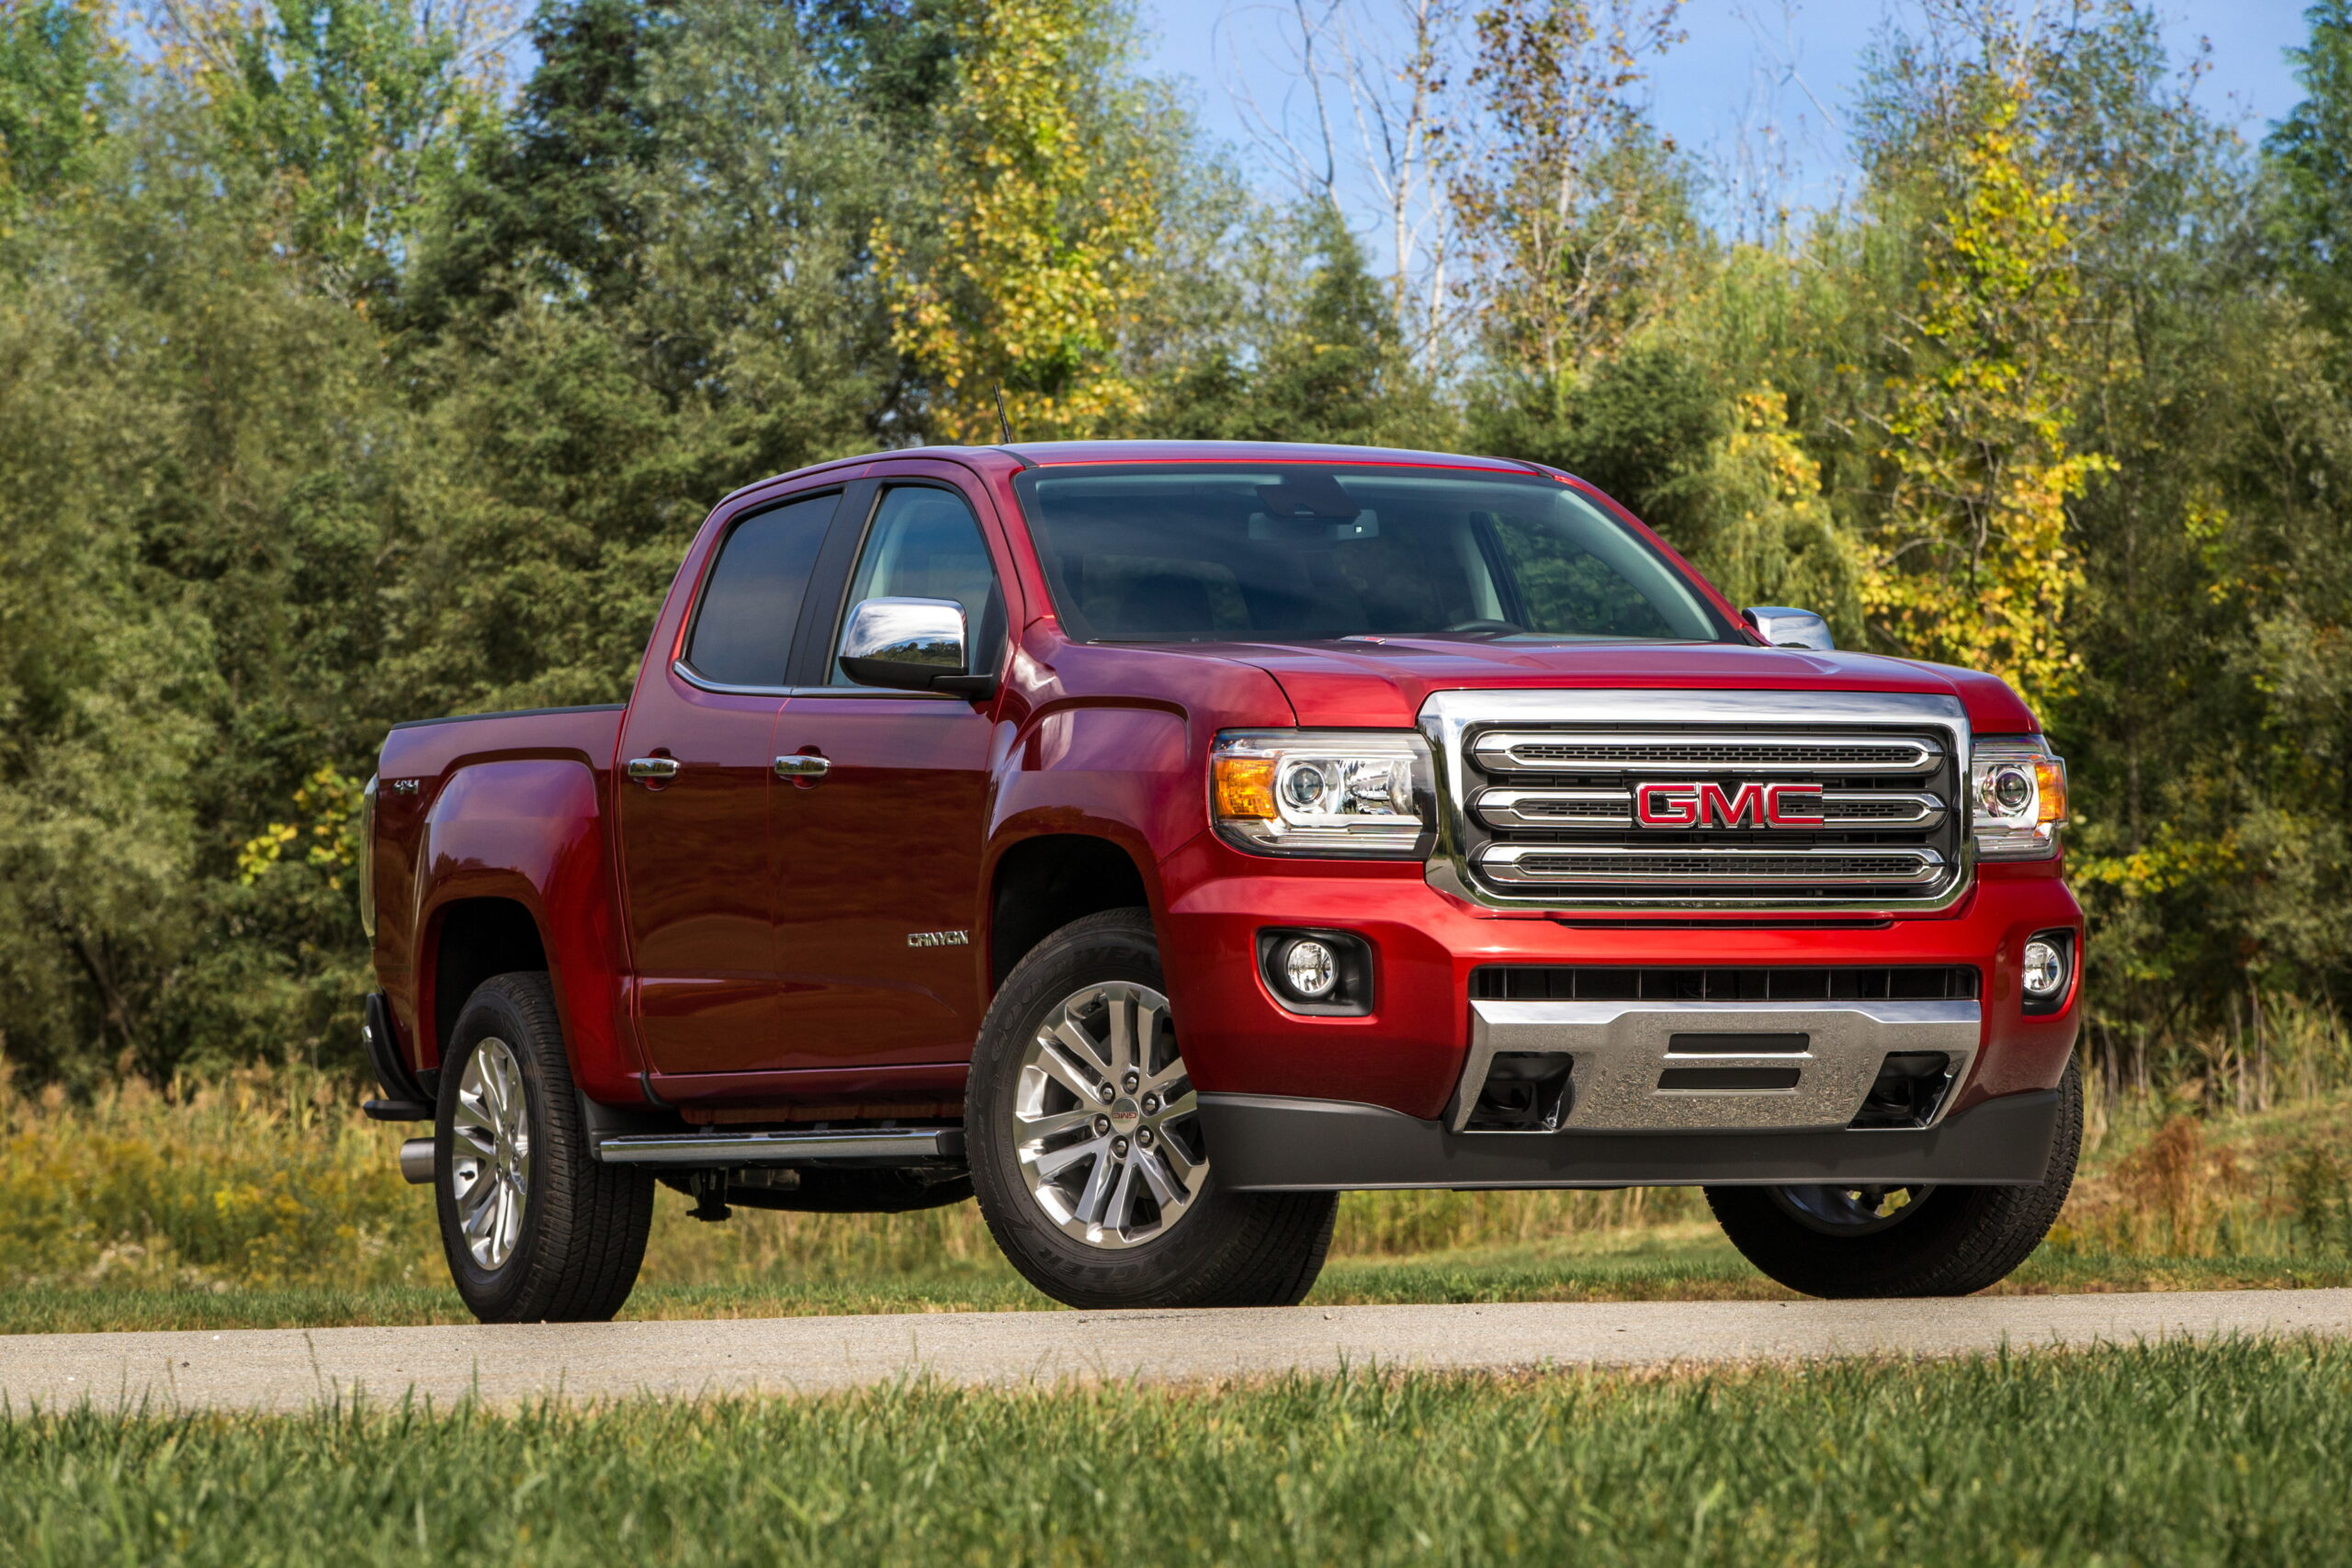 2020 GMC Canyon red diesel